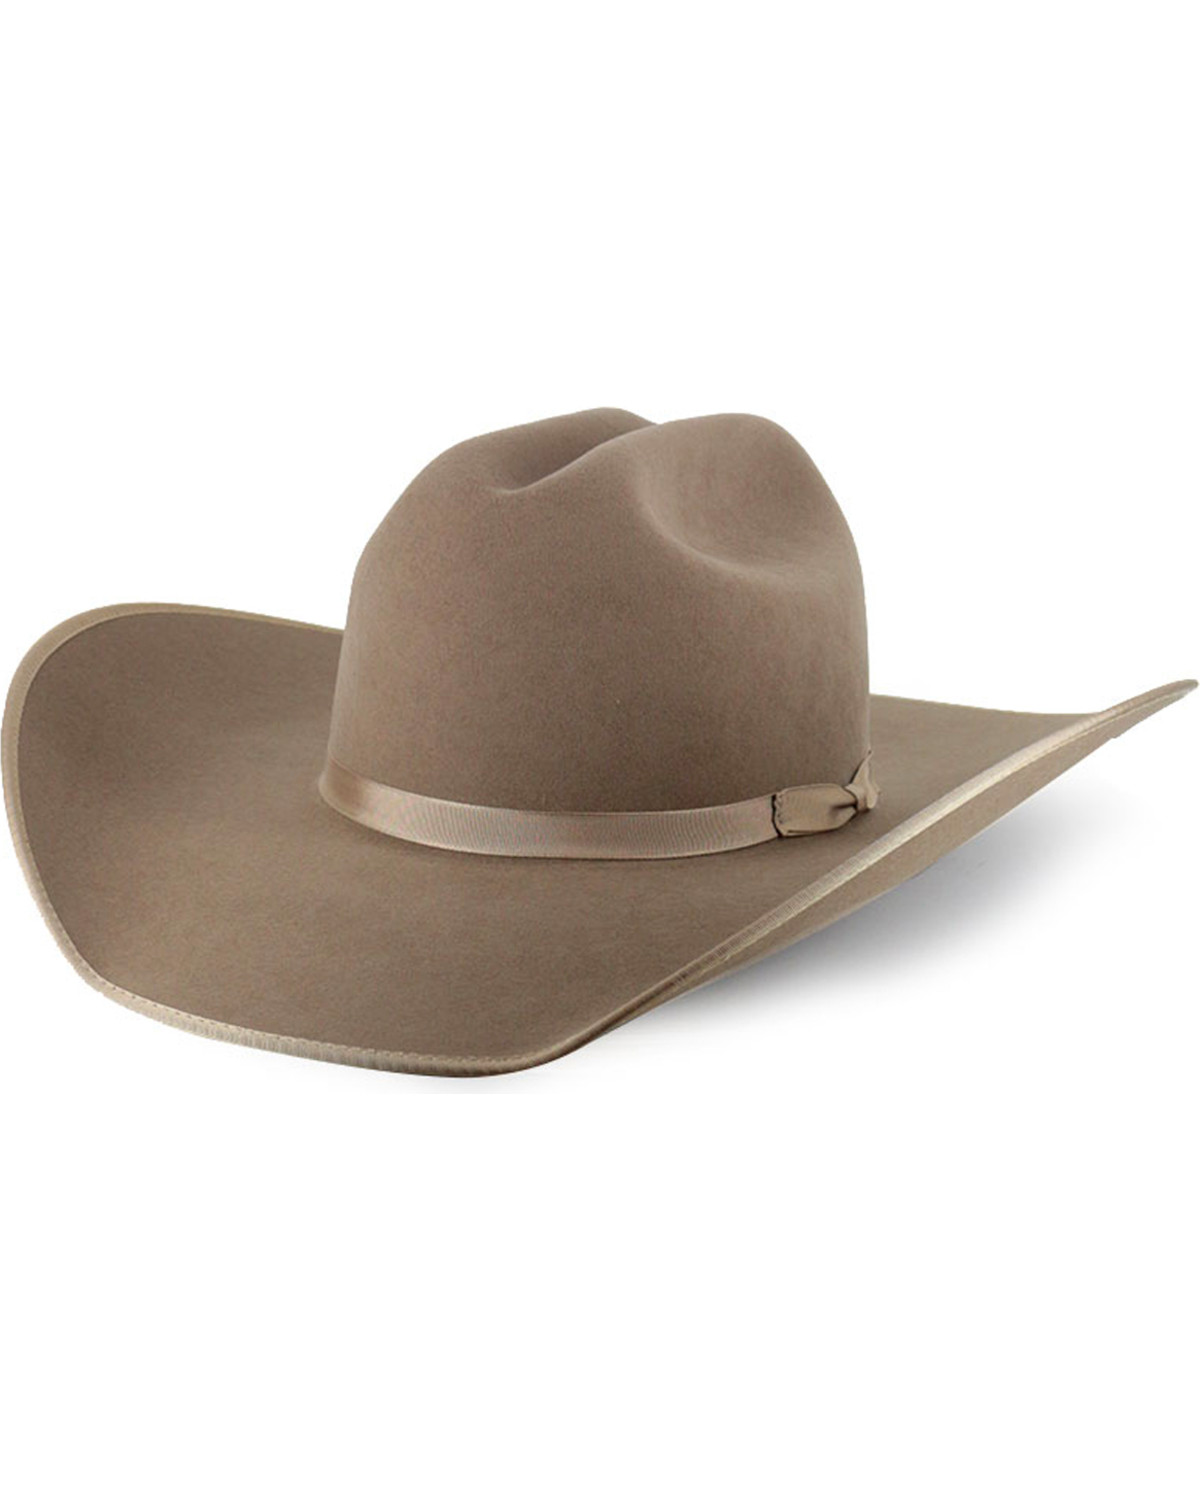 93d13144 Zoomed Image Rodeo King 5X Felt Hat, Medium Brown, hi-res. Zoomed Image ...